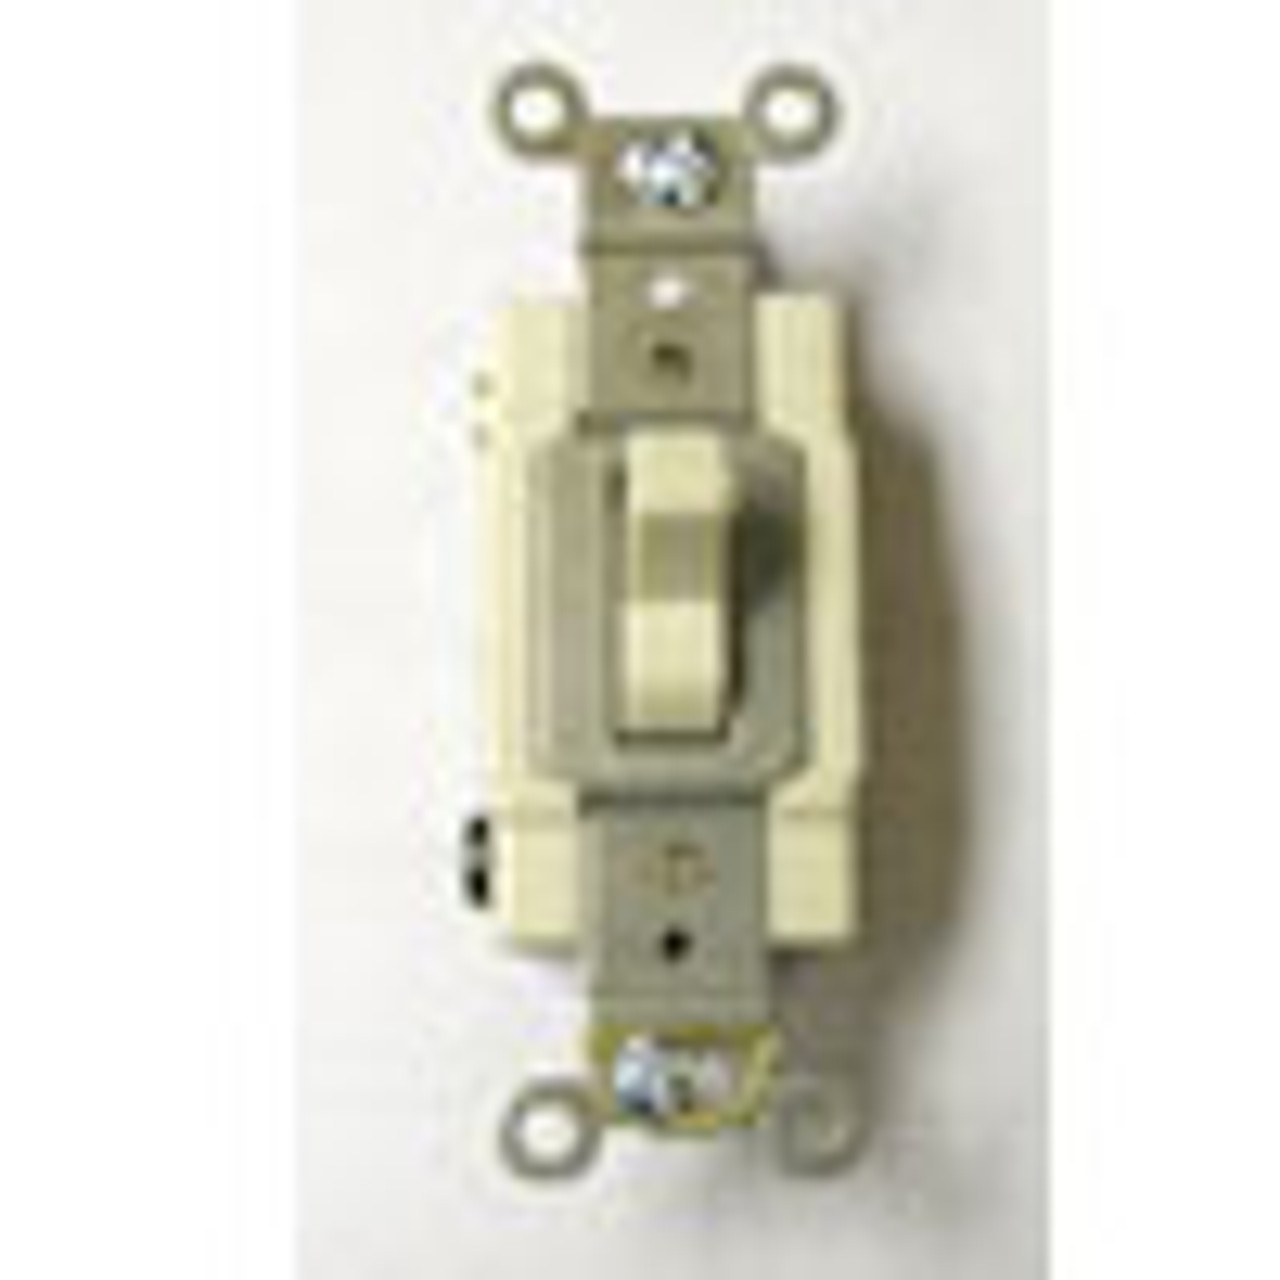 Cooper CSB320V Ivory 20A 3Way Commercial Switch Sold in Box of 5 - New